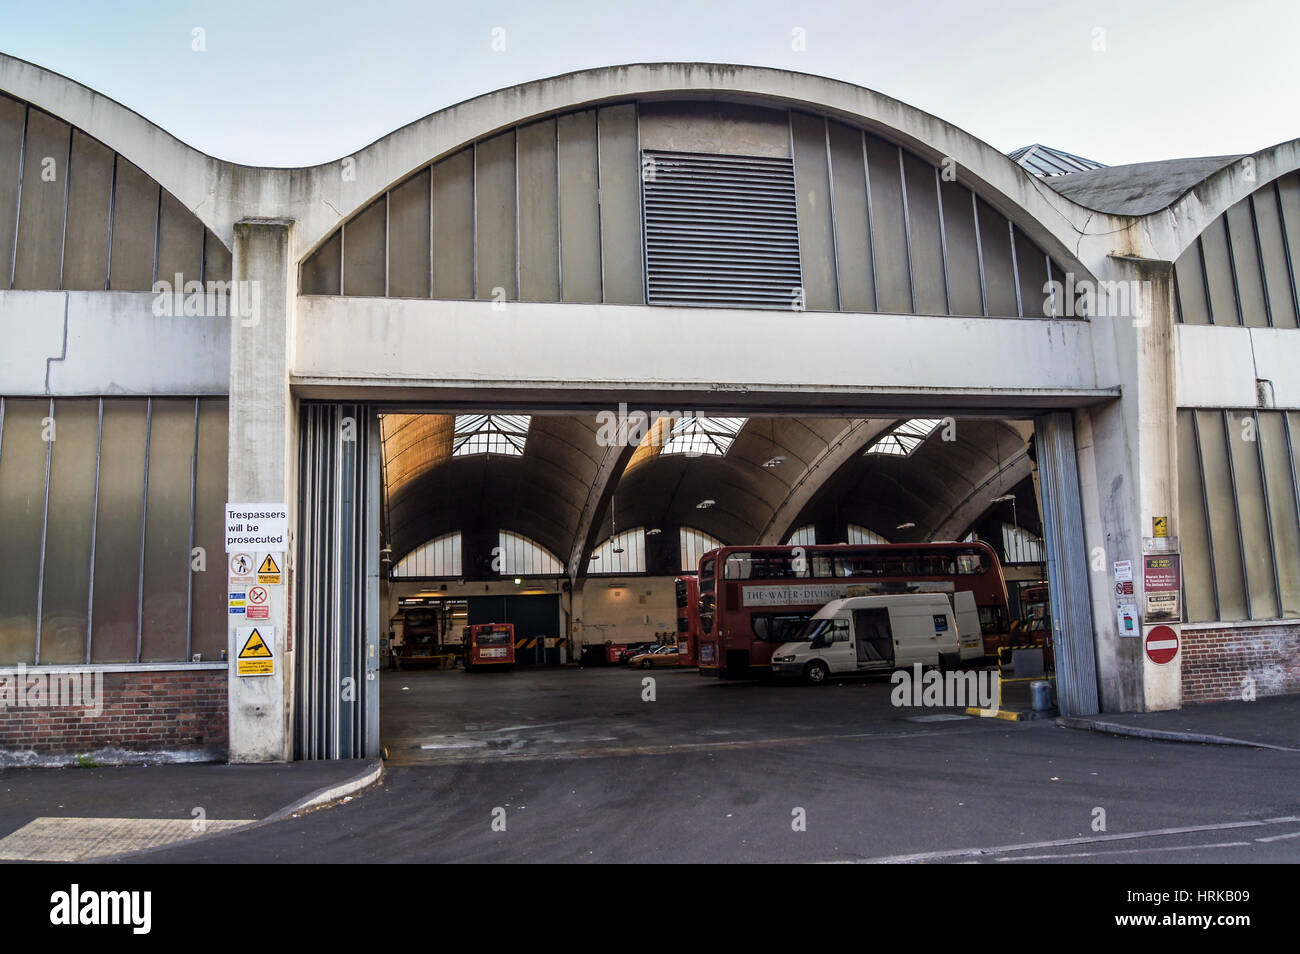 Stockwell Bus Garage by A .E. Beer and Adie, Button & Partners, 1952, Stockwell, London, England - Stock Image